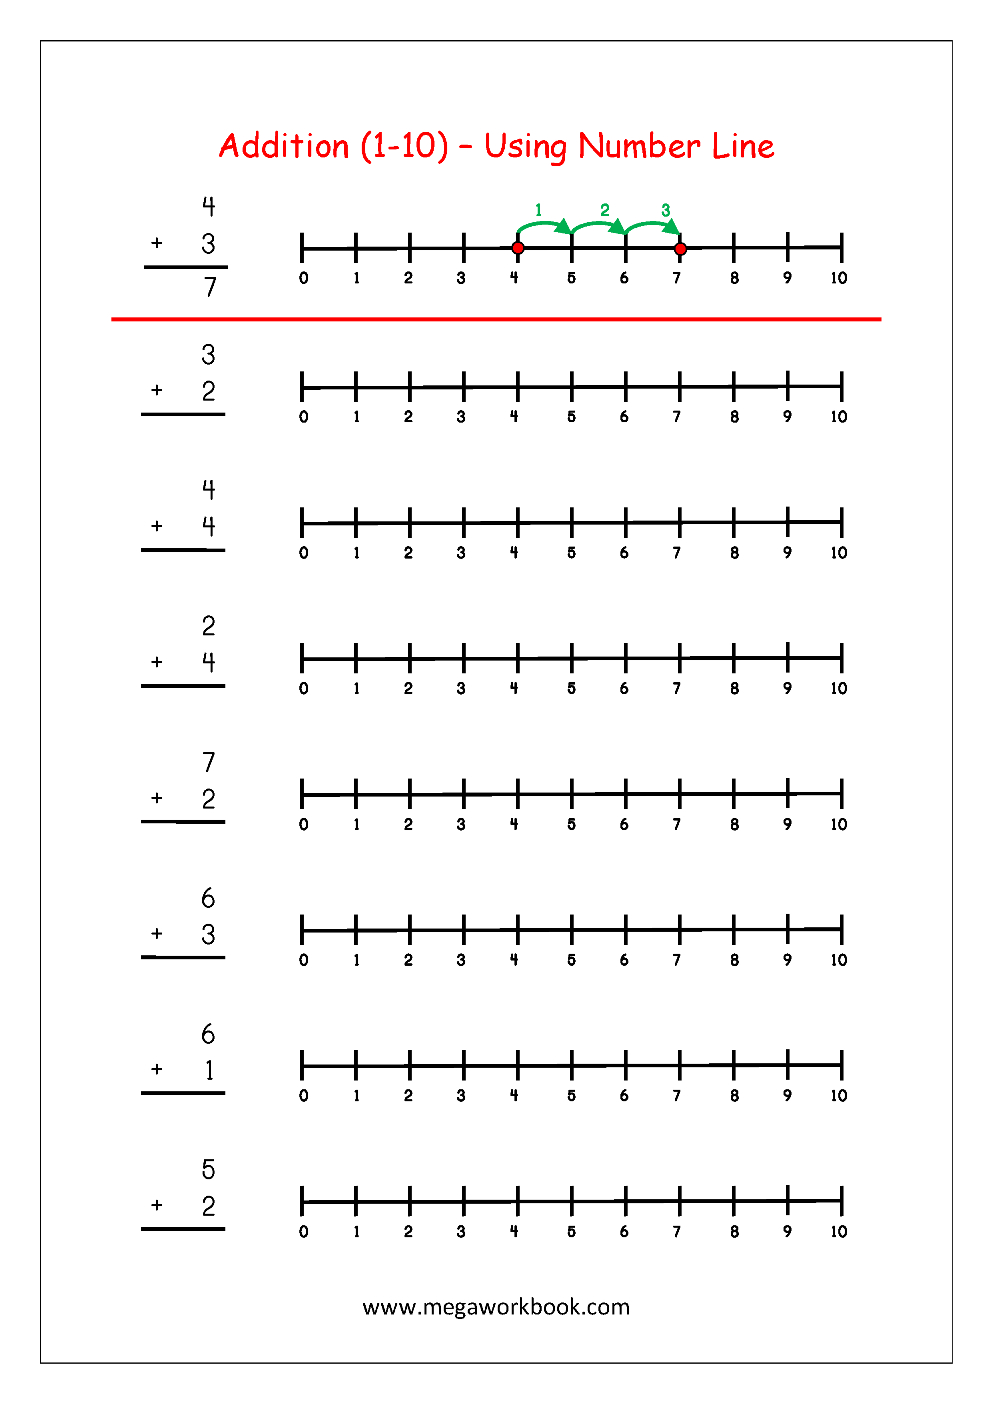 Free Printable Number Addition Worksheets (1-10) For Kindergarten - Free Printable Number Line